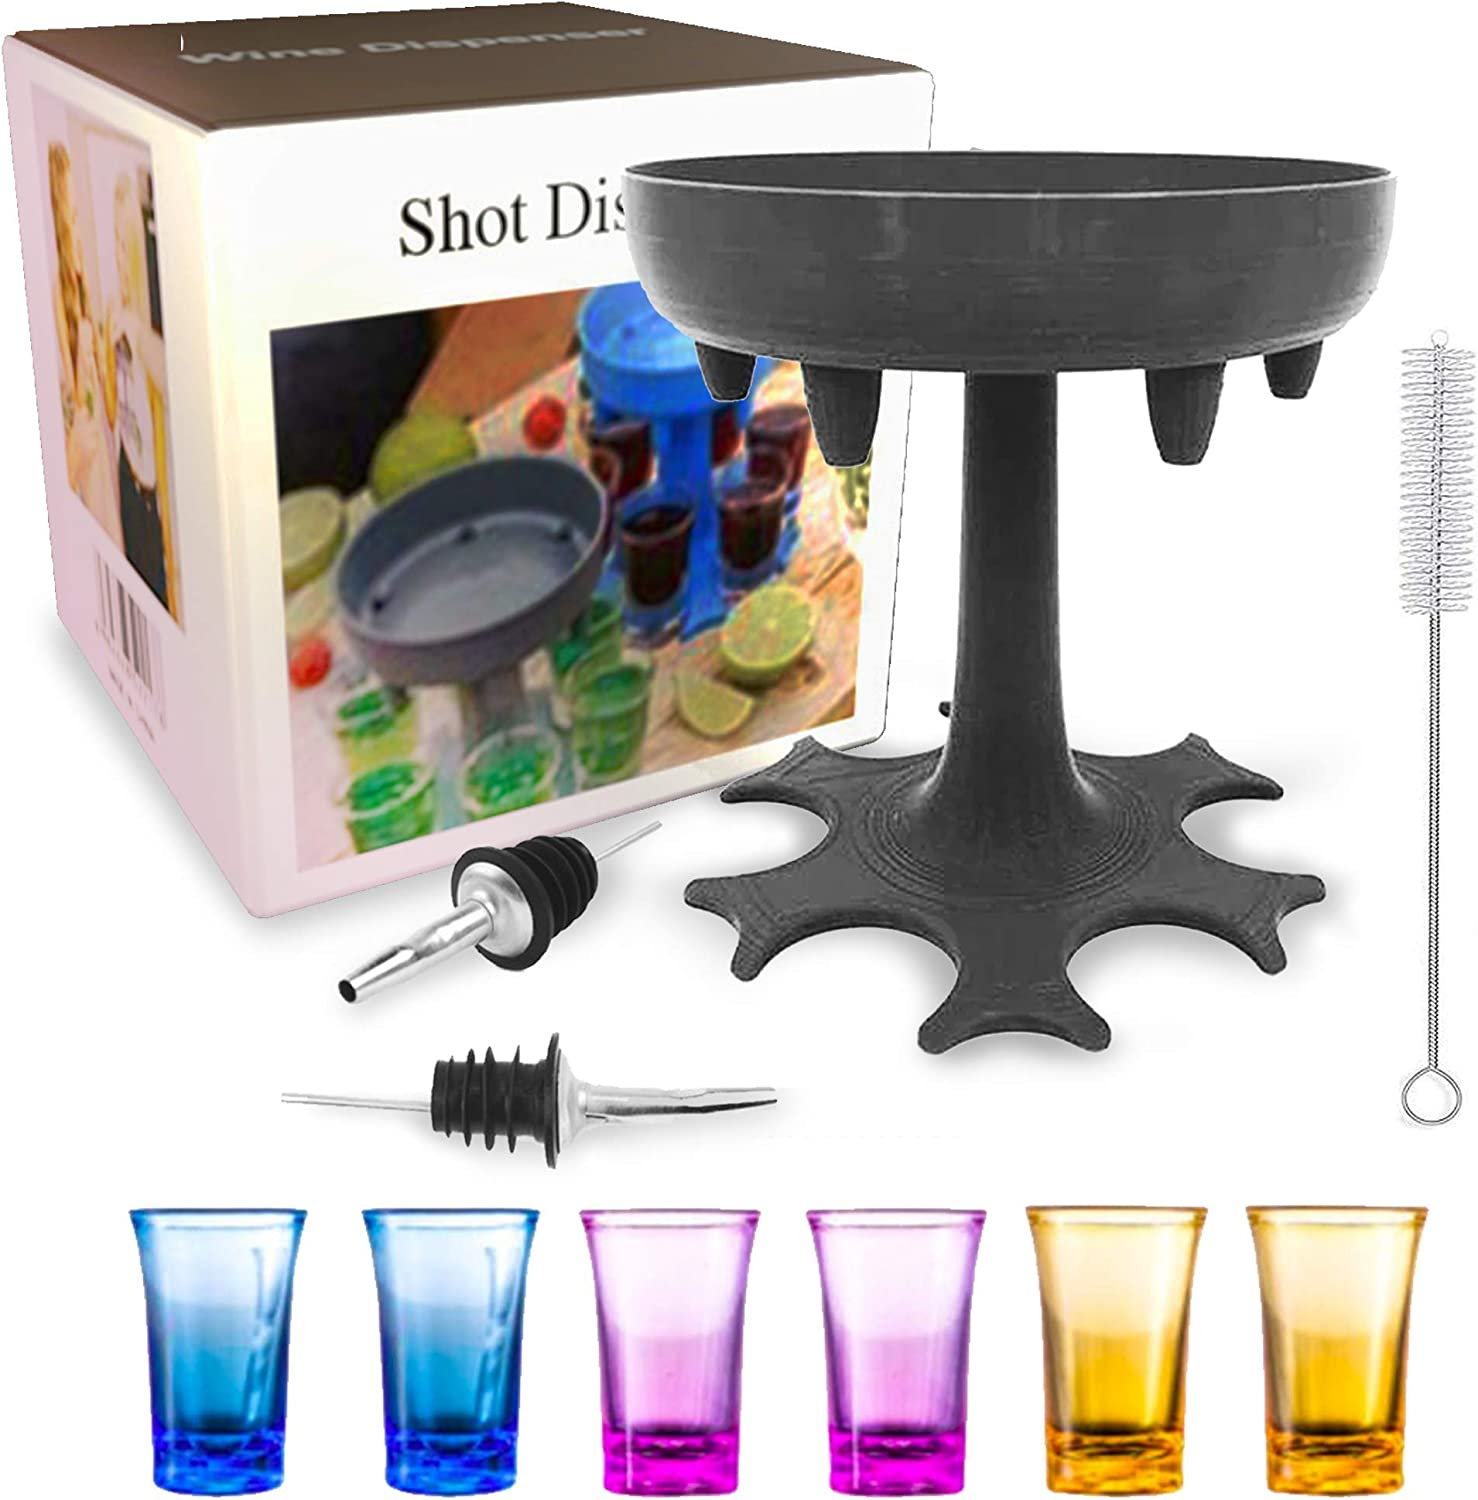 Shot Glass Dispenser Holder Set - 6 Ways Liquor Dispenser Carrier Fast Drinking Party Games With Buddy Liquor Bottle Pourers Straw Cleaning Brush By RemyLife